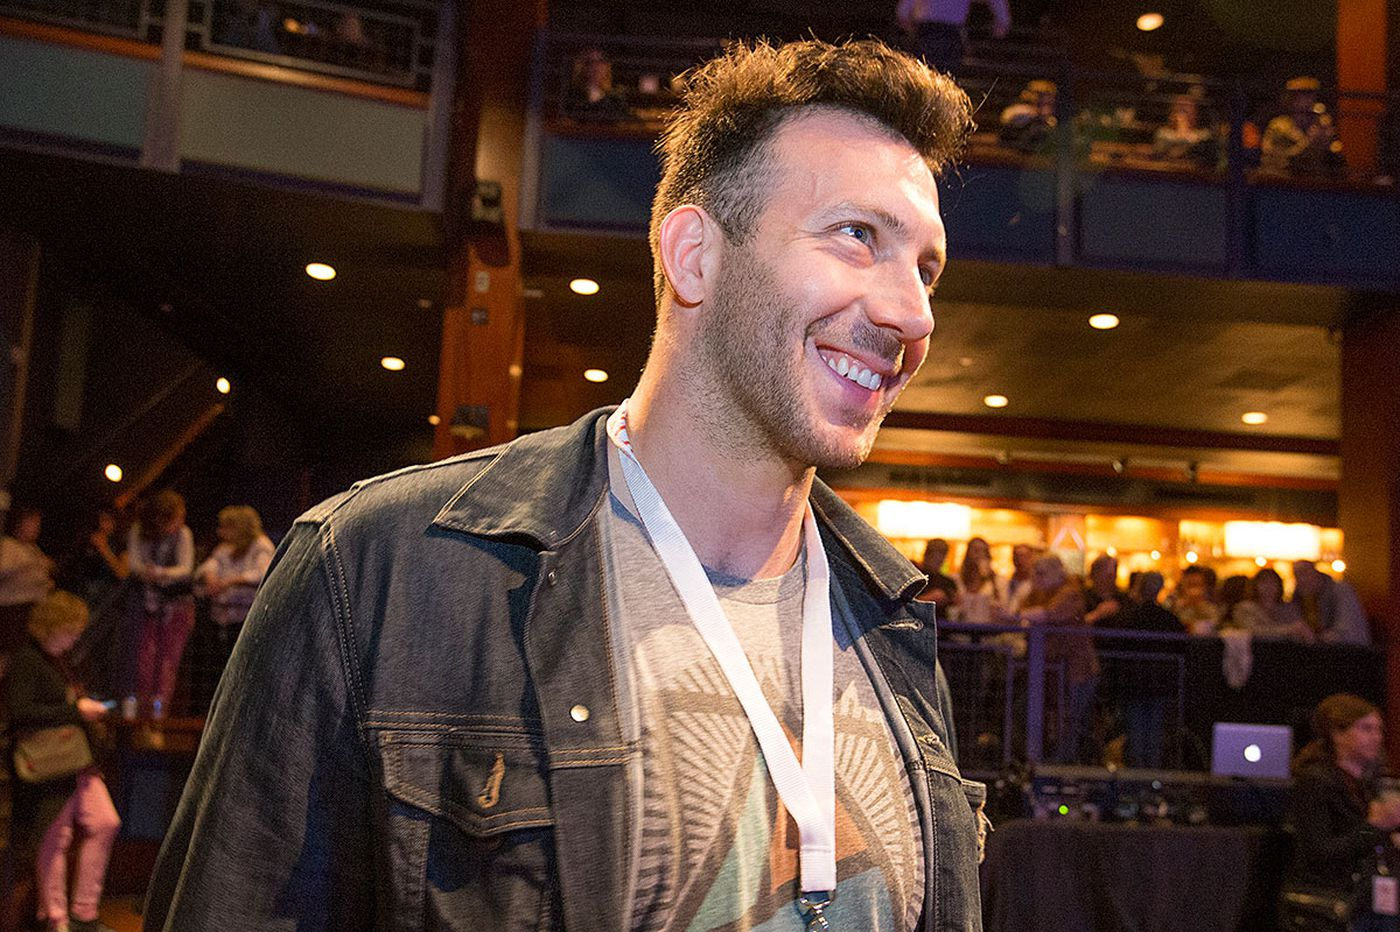 Connor Barwin's Make the World Better benefit announces headliners